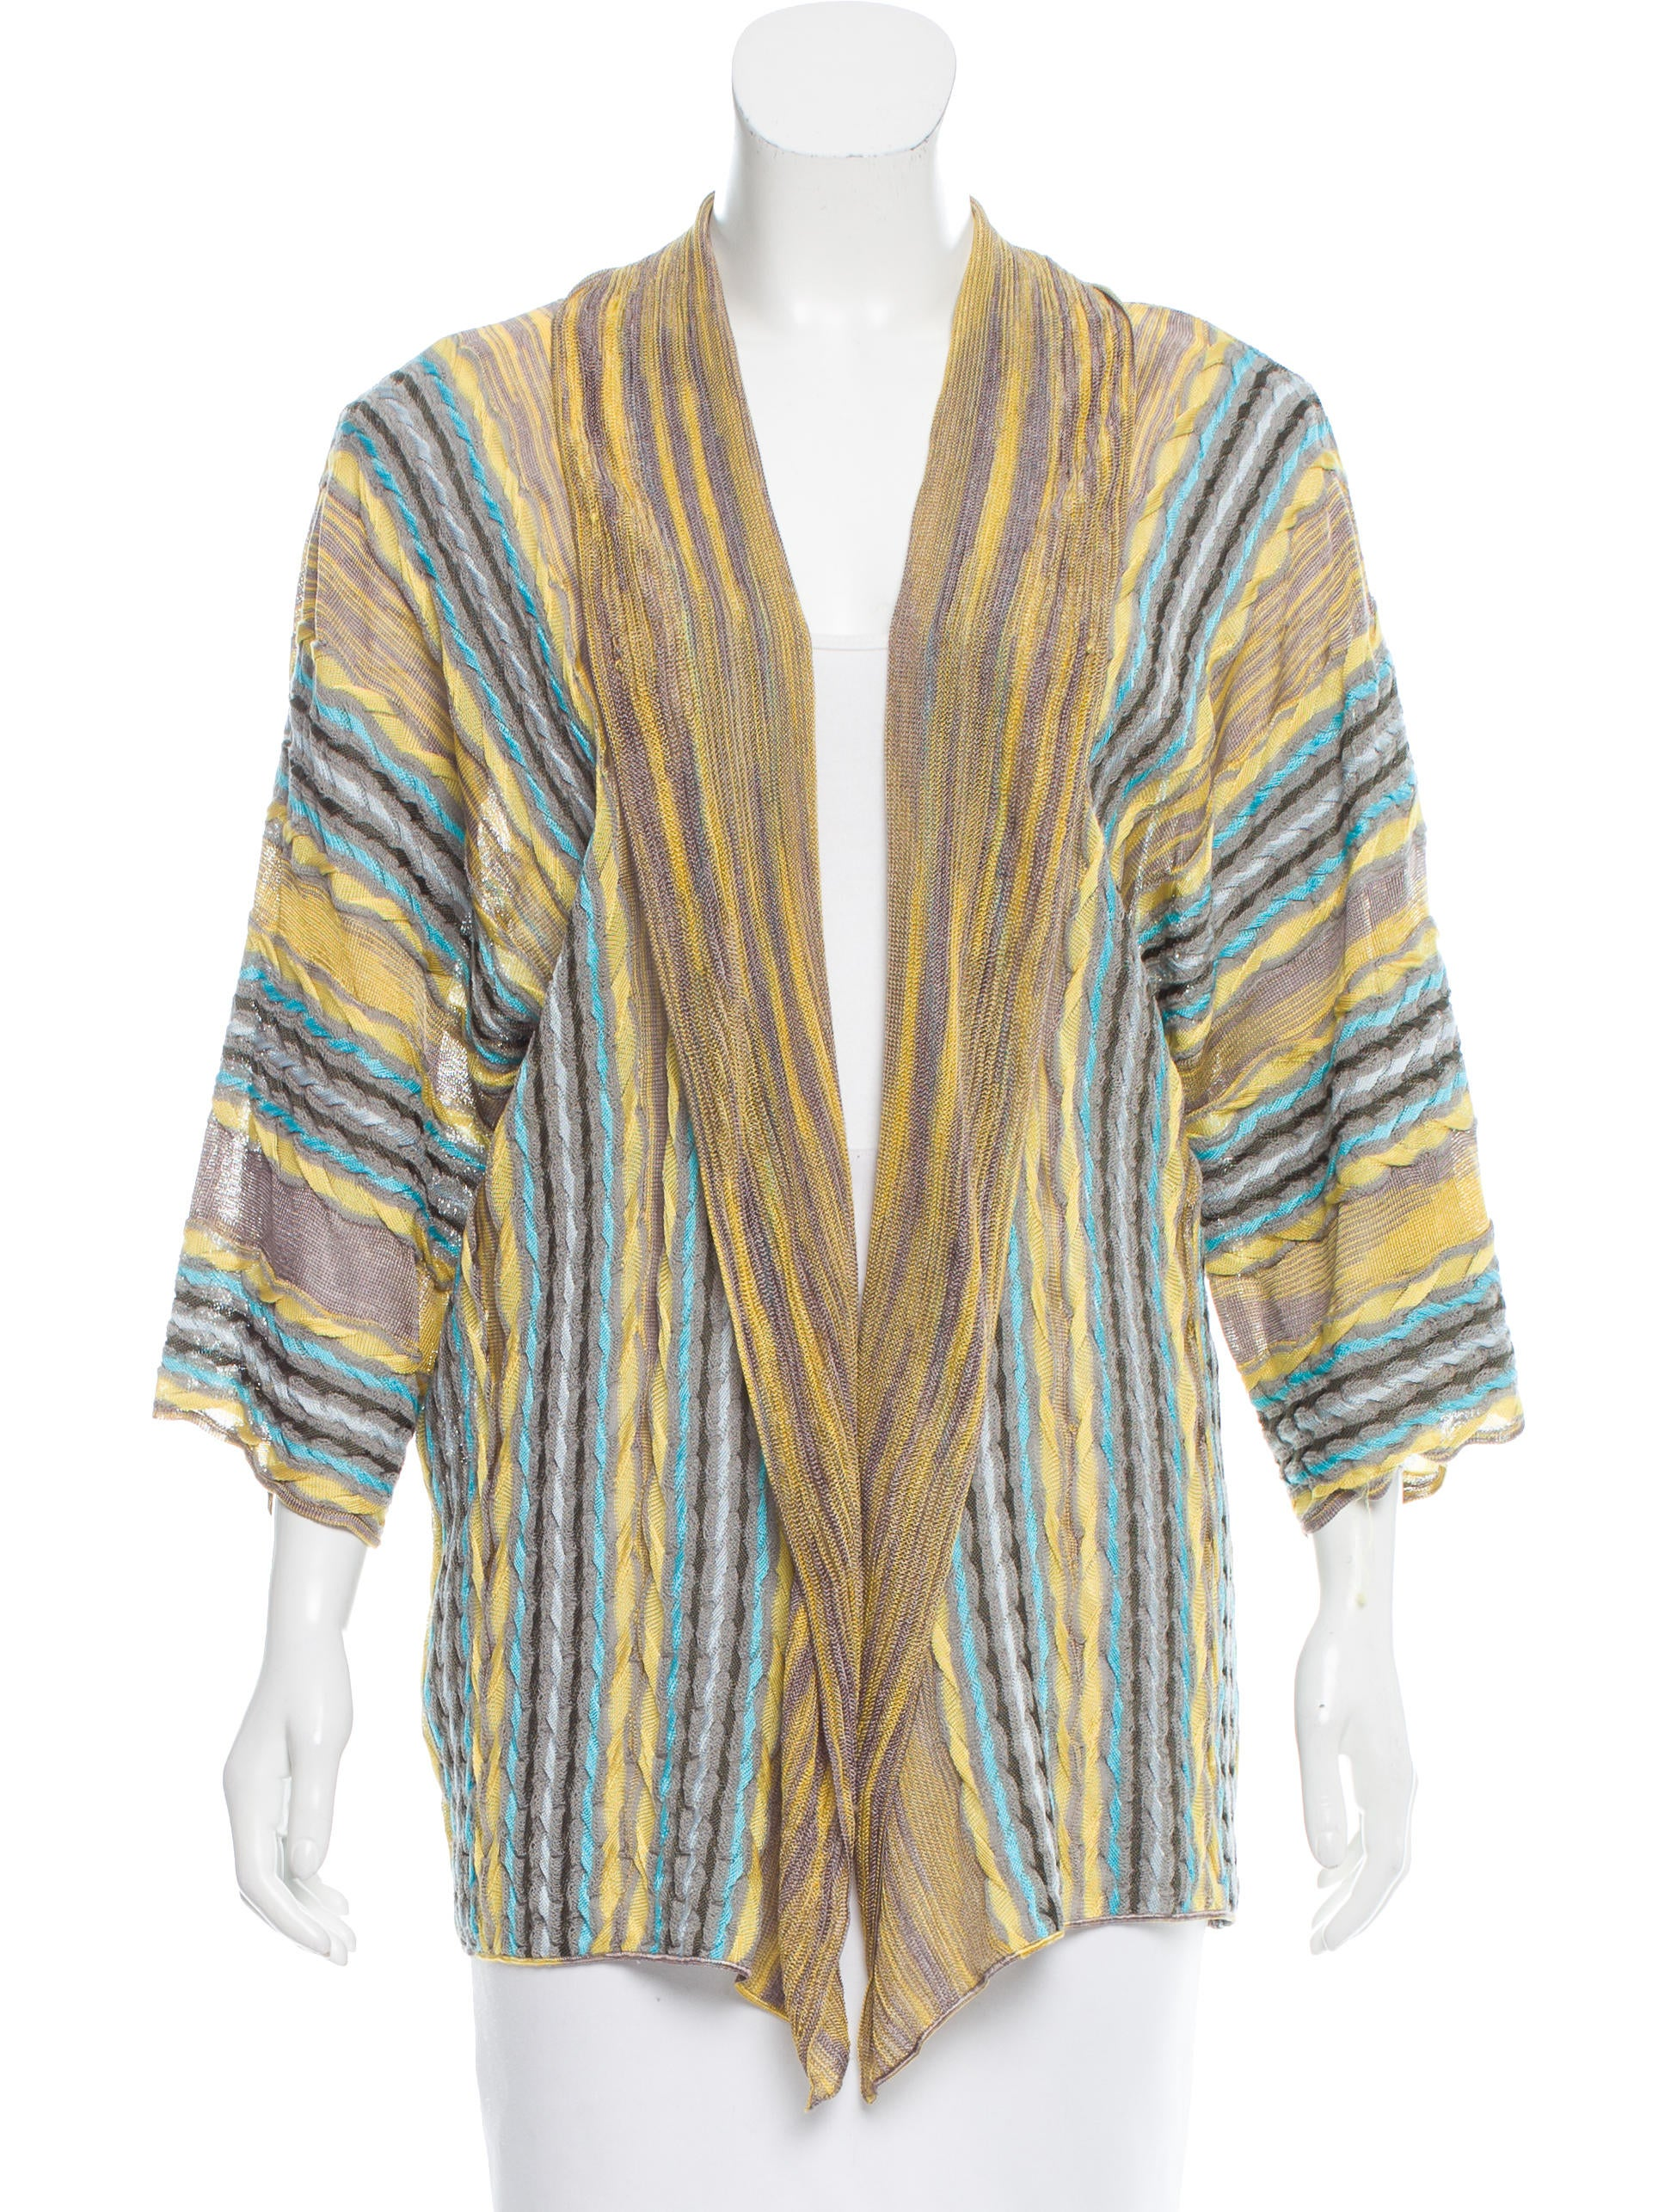 M Missoni Open Front Knit Cardigan - Clothing - WM438676 The RealReal